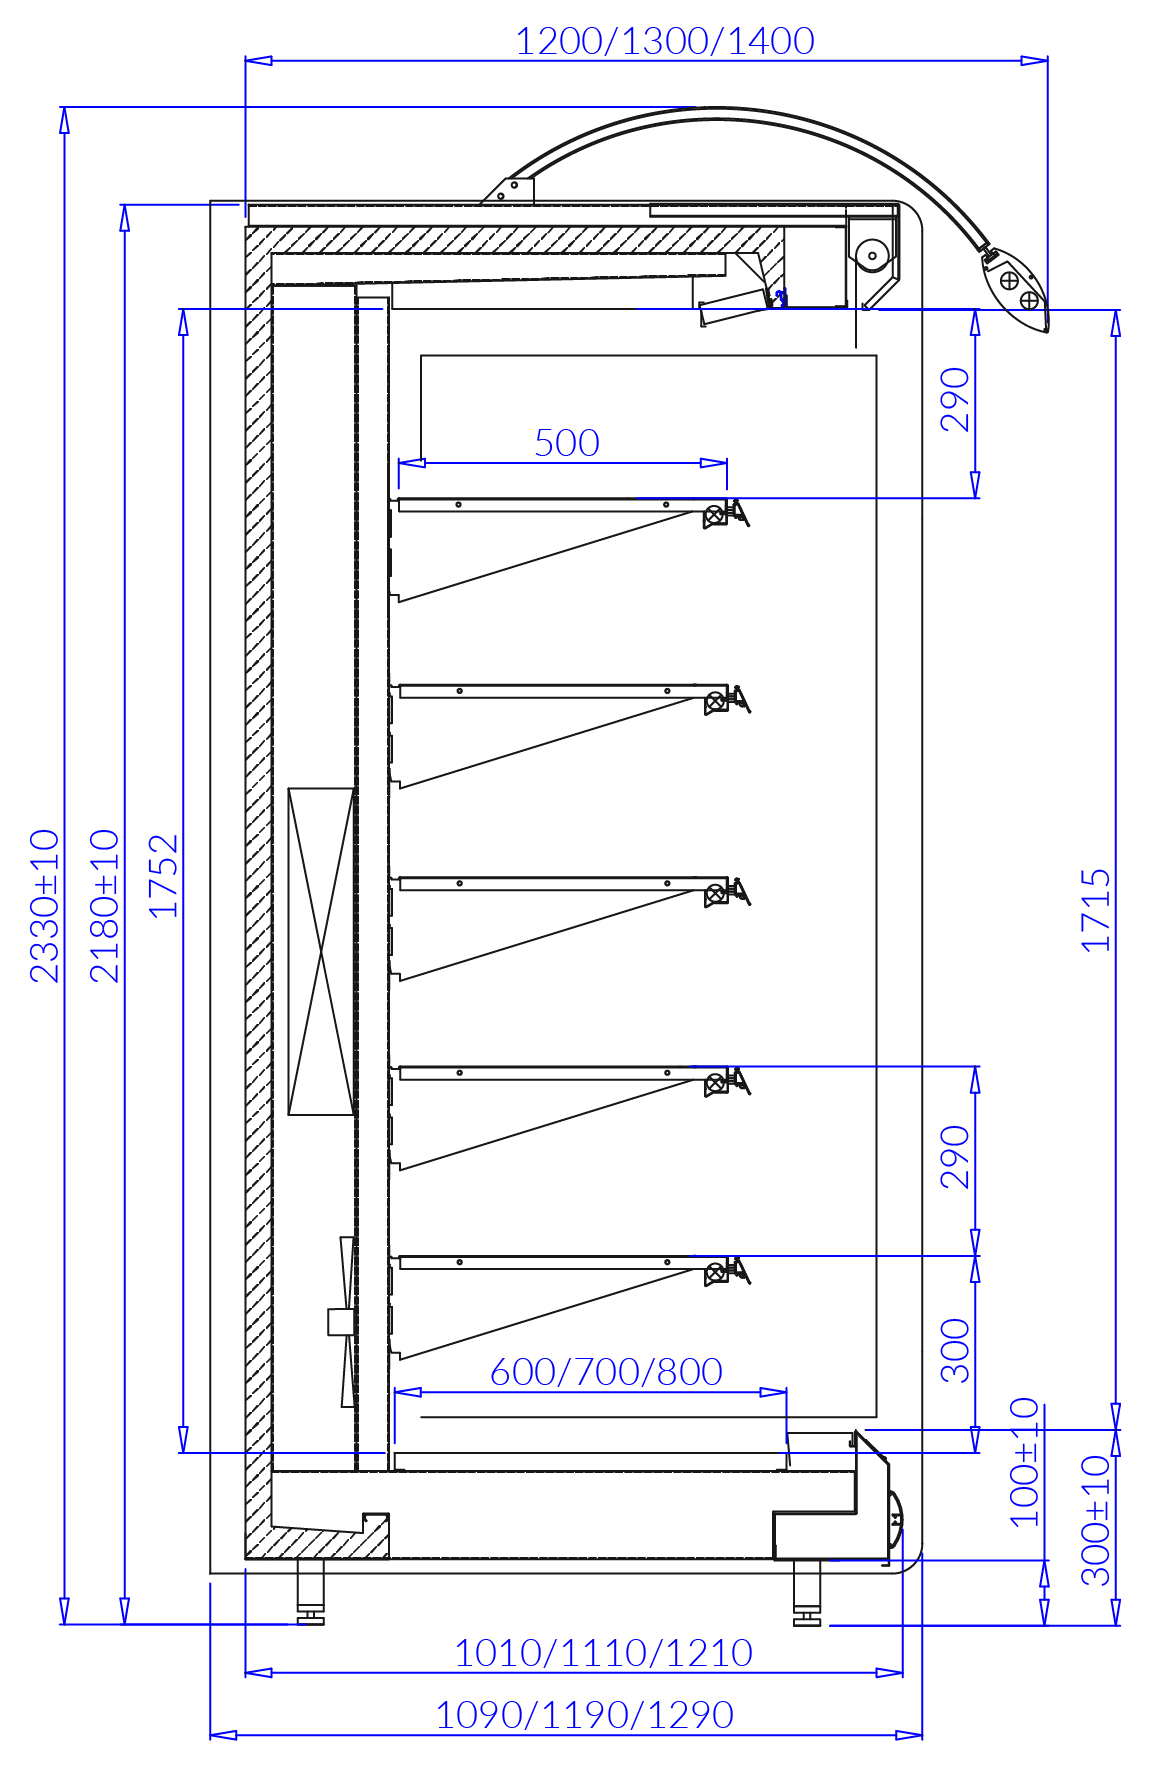 Technical drawing BARBADOS MOD/C BARBADOS MOD C